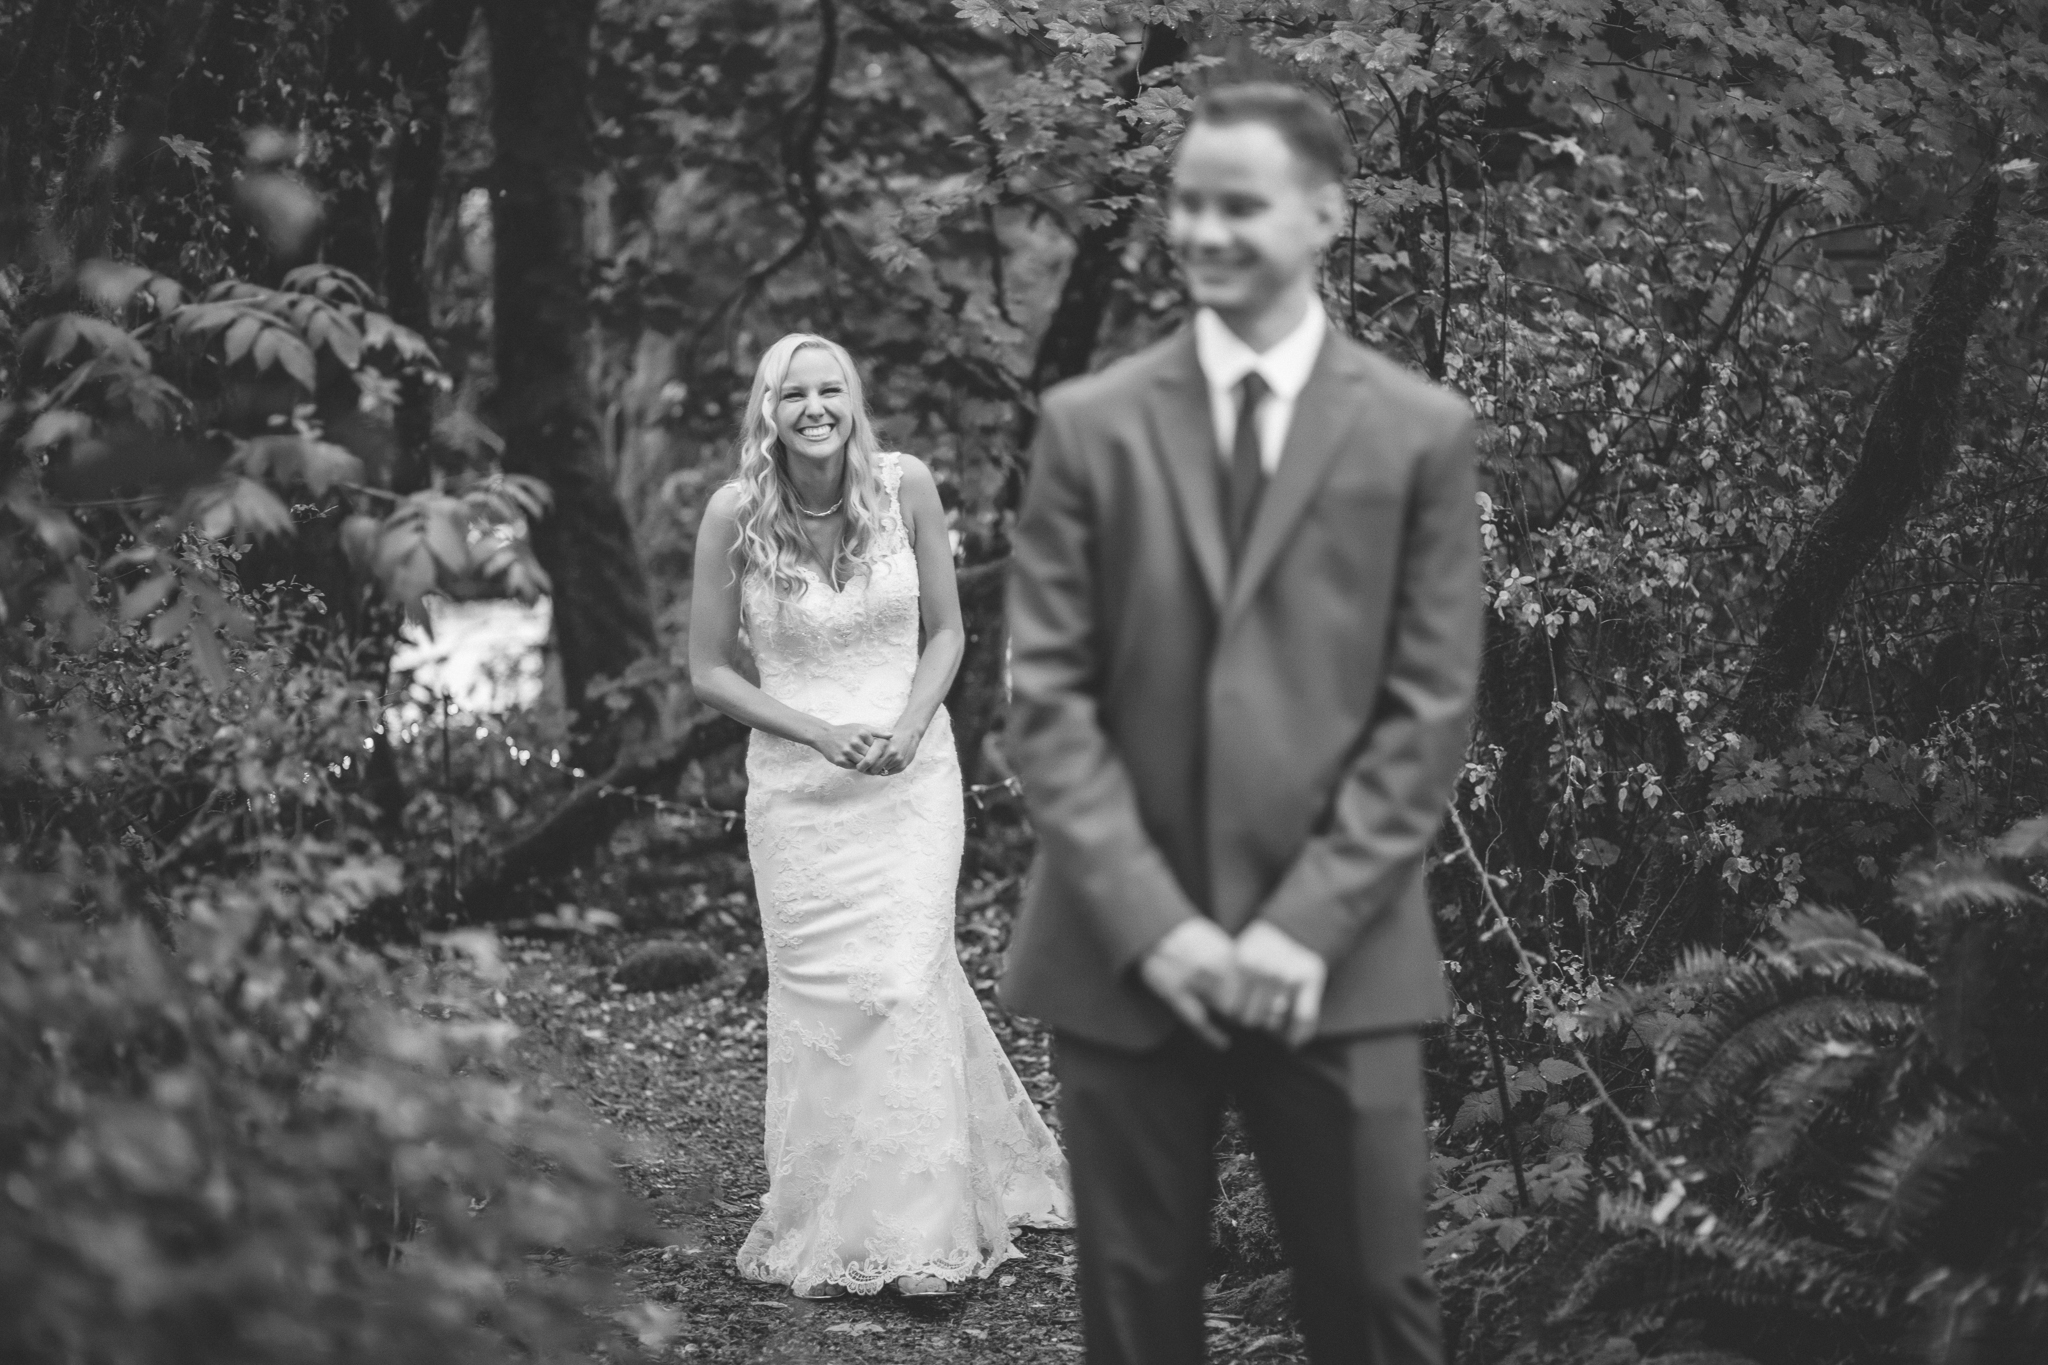 pomeroy farm portland seattle wedding photographer-10.jpg